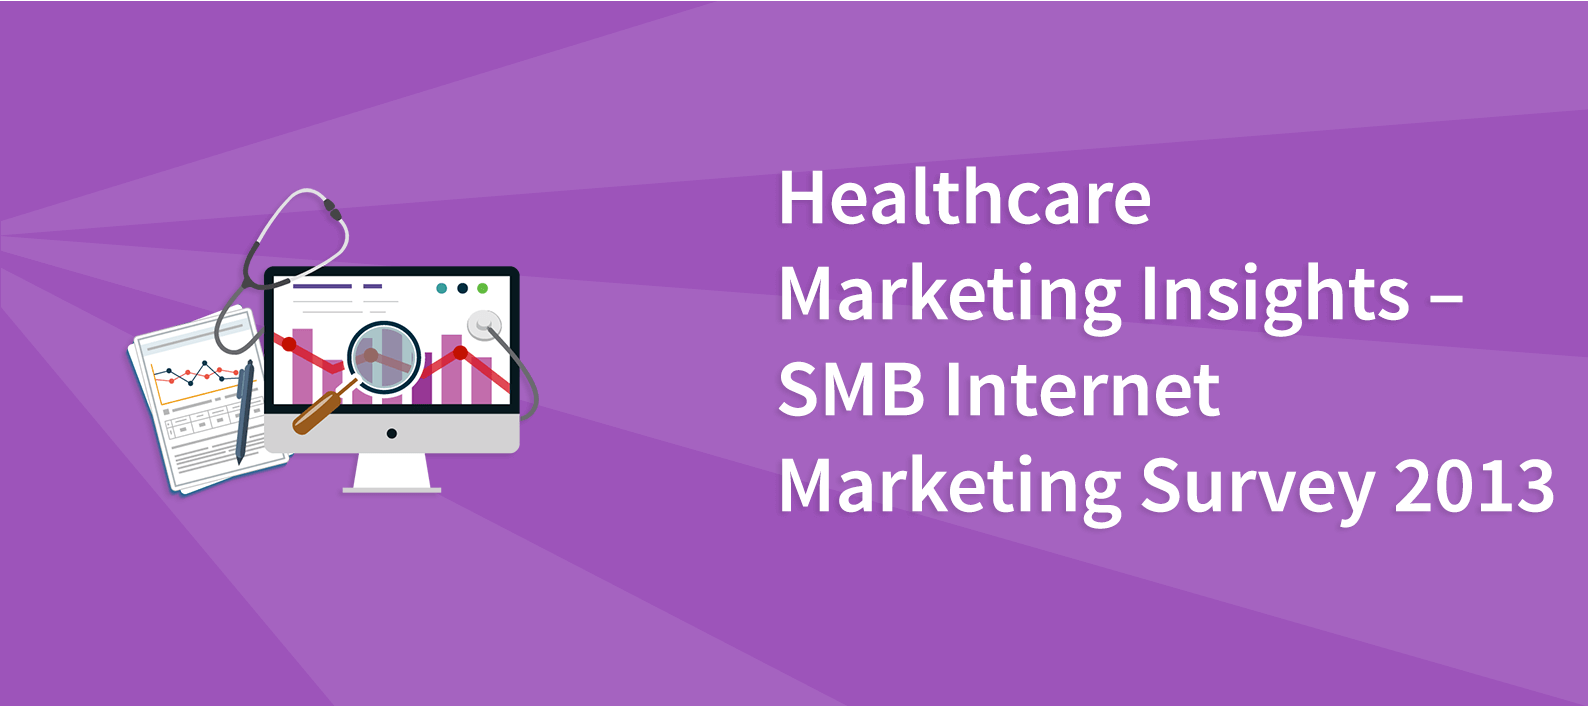 marketing in healthcare Management in healthcare is the new peer-reviewed journal publishing high-quality articles and case studies on managing healthcare services and resources.